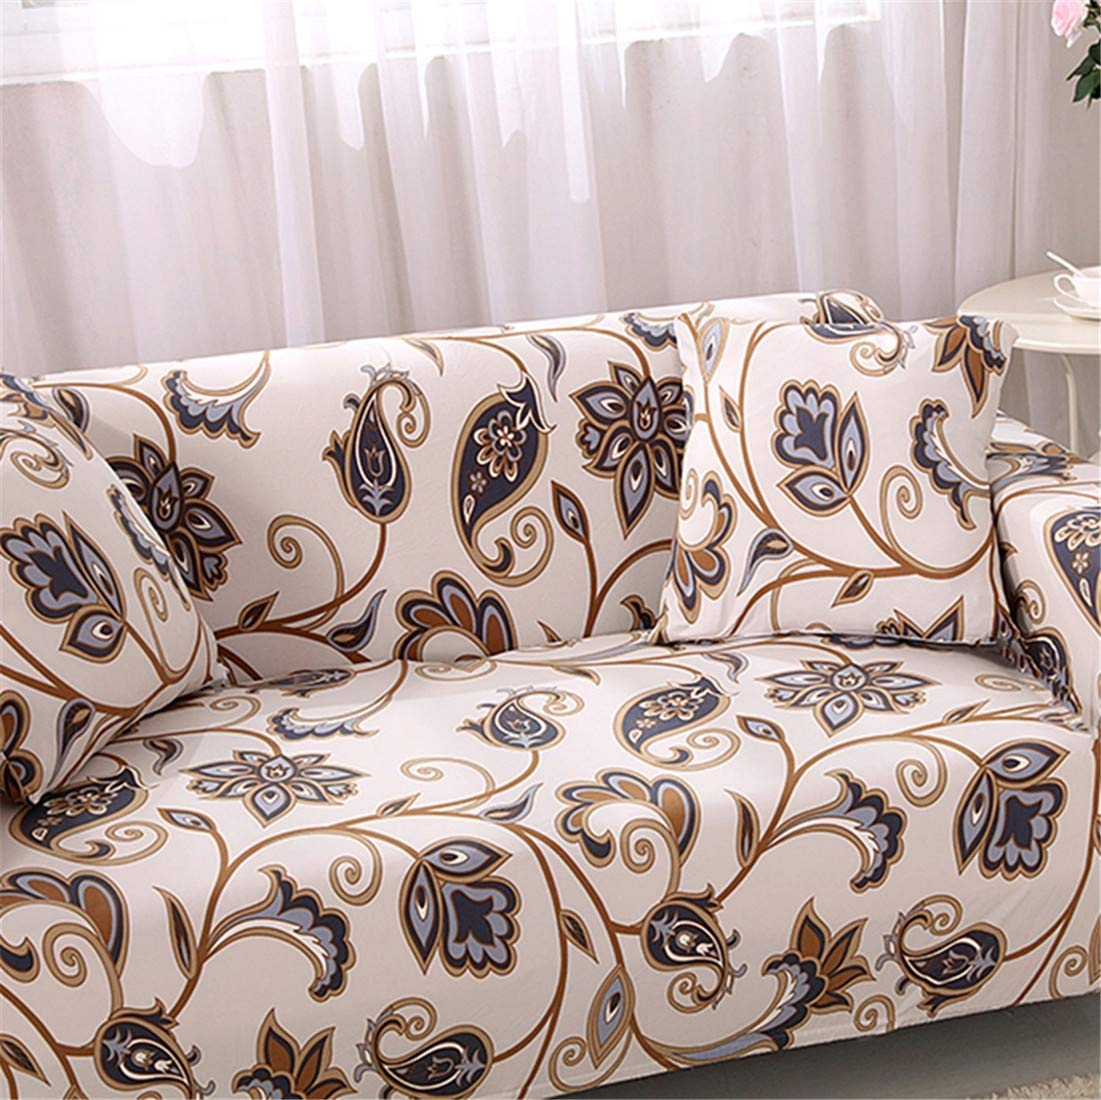 Chickwin Sofa Slipcover Elastic Fabric Pure Color Couch Protector Slip Cover Washable Furniture Protector 1pc Pillowcase: 45 x 45 cm,Autumn